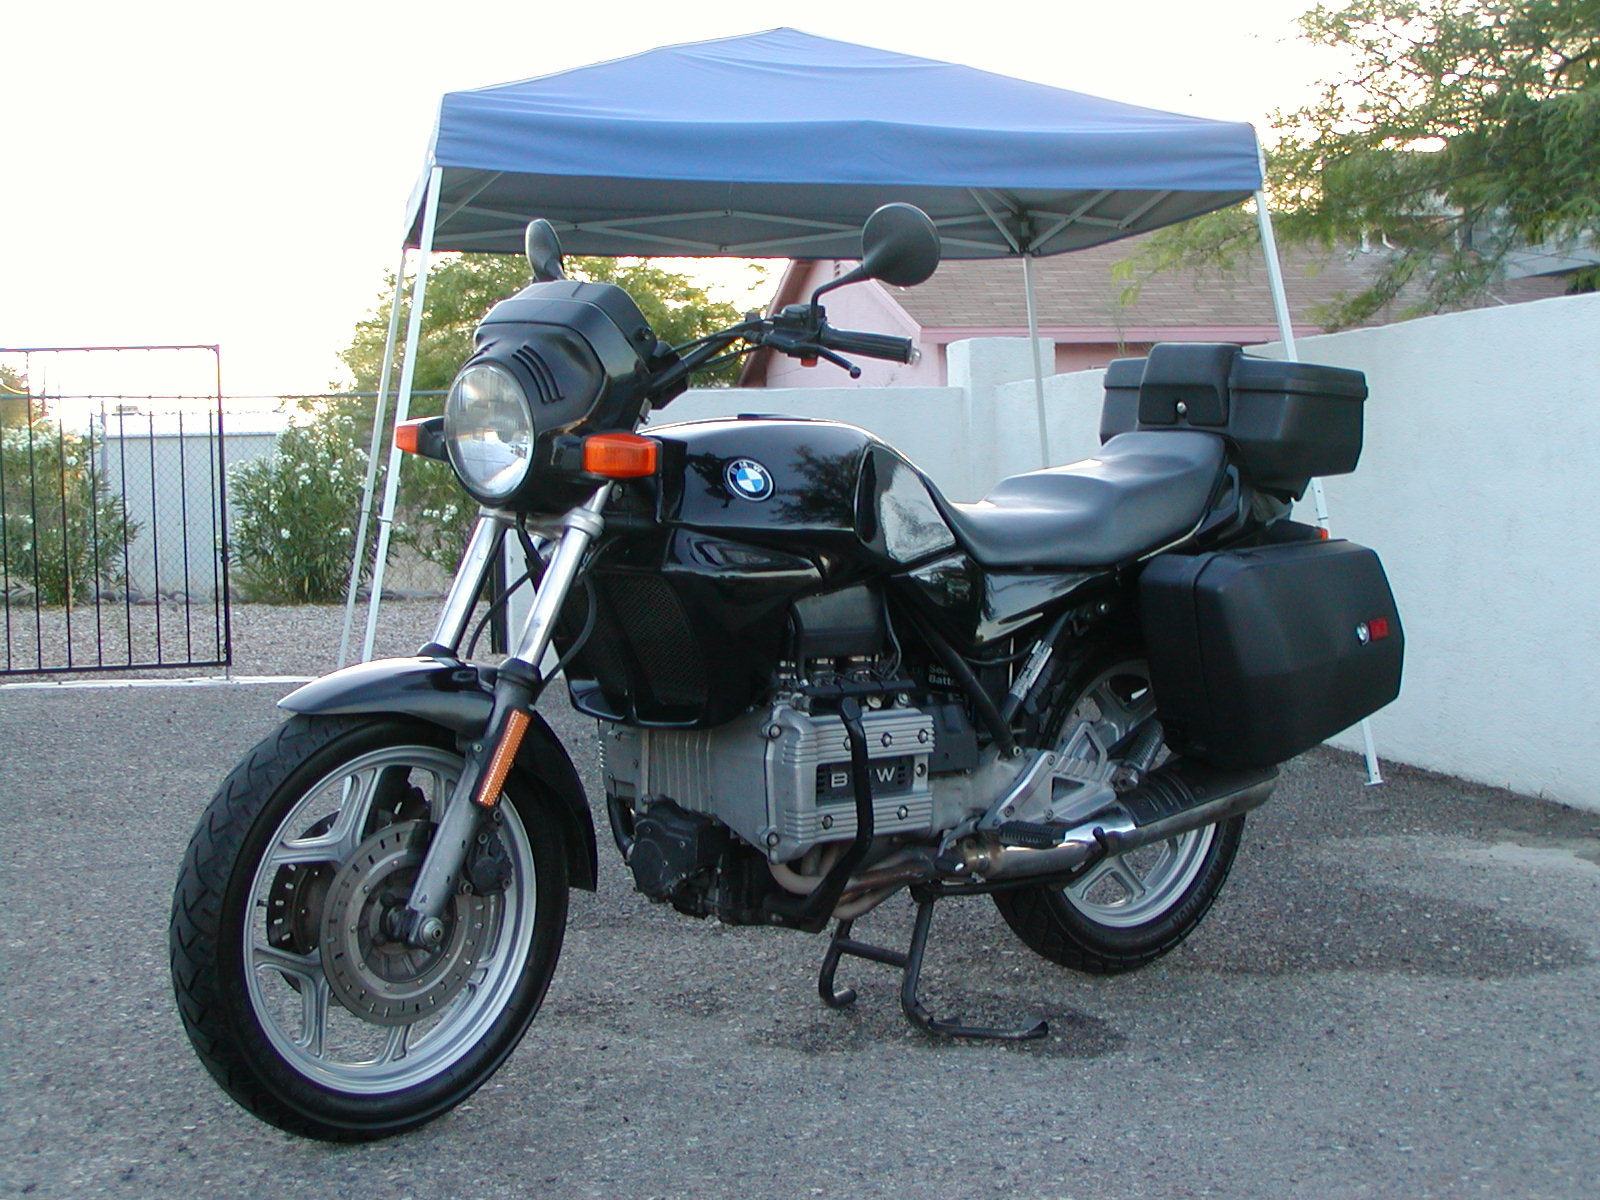 BMW K75RT 1992 images #5352